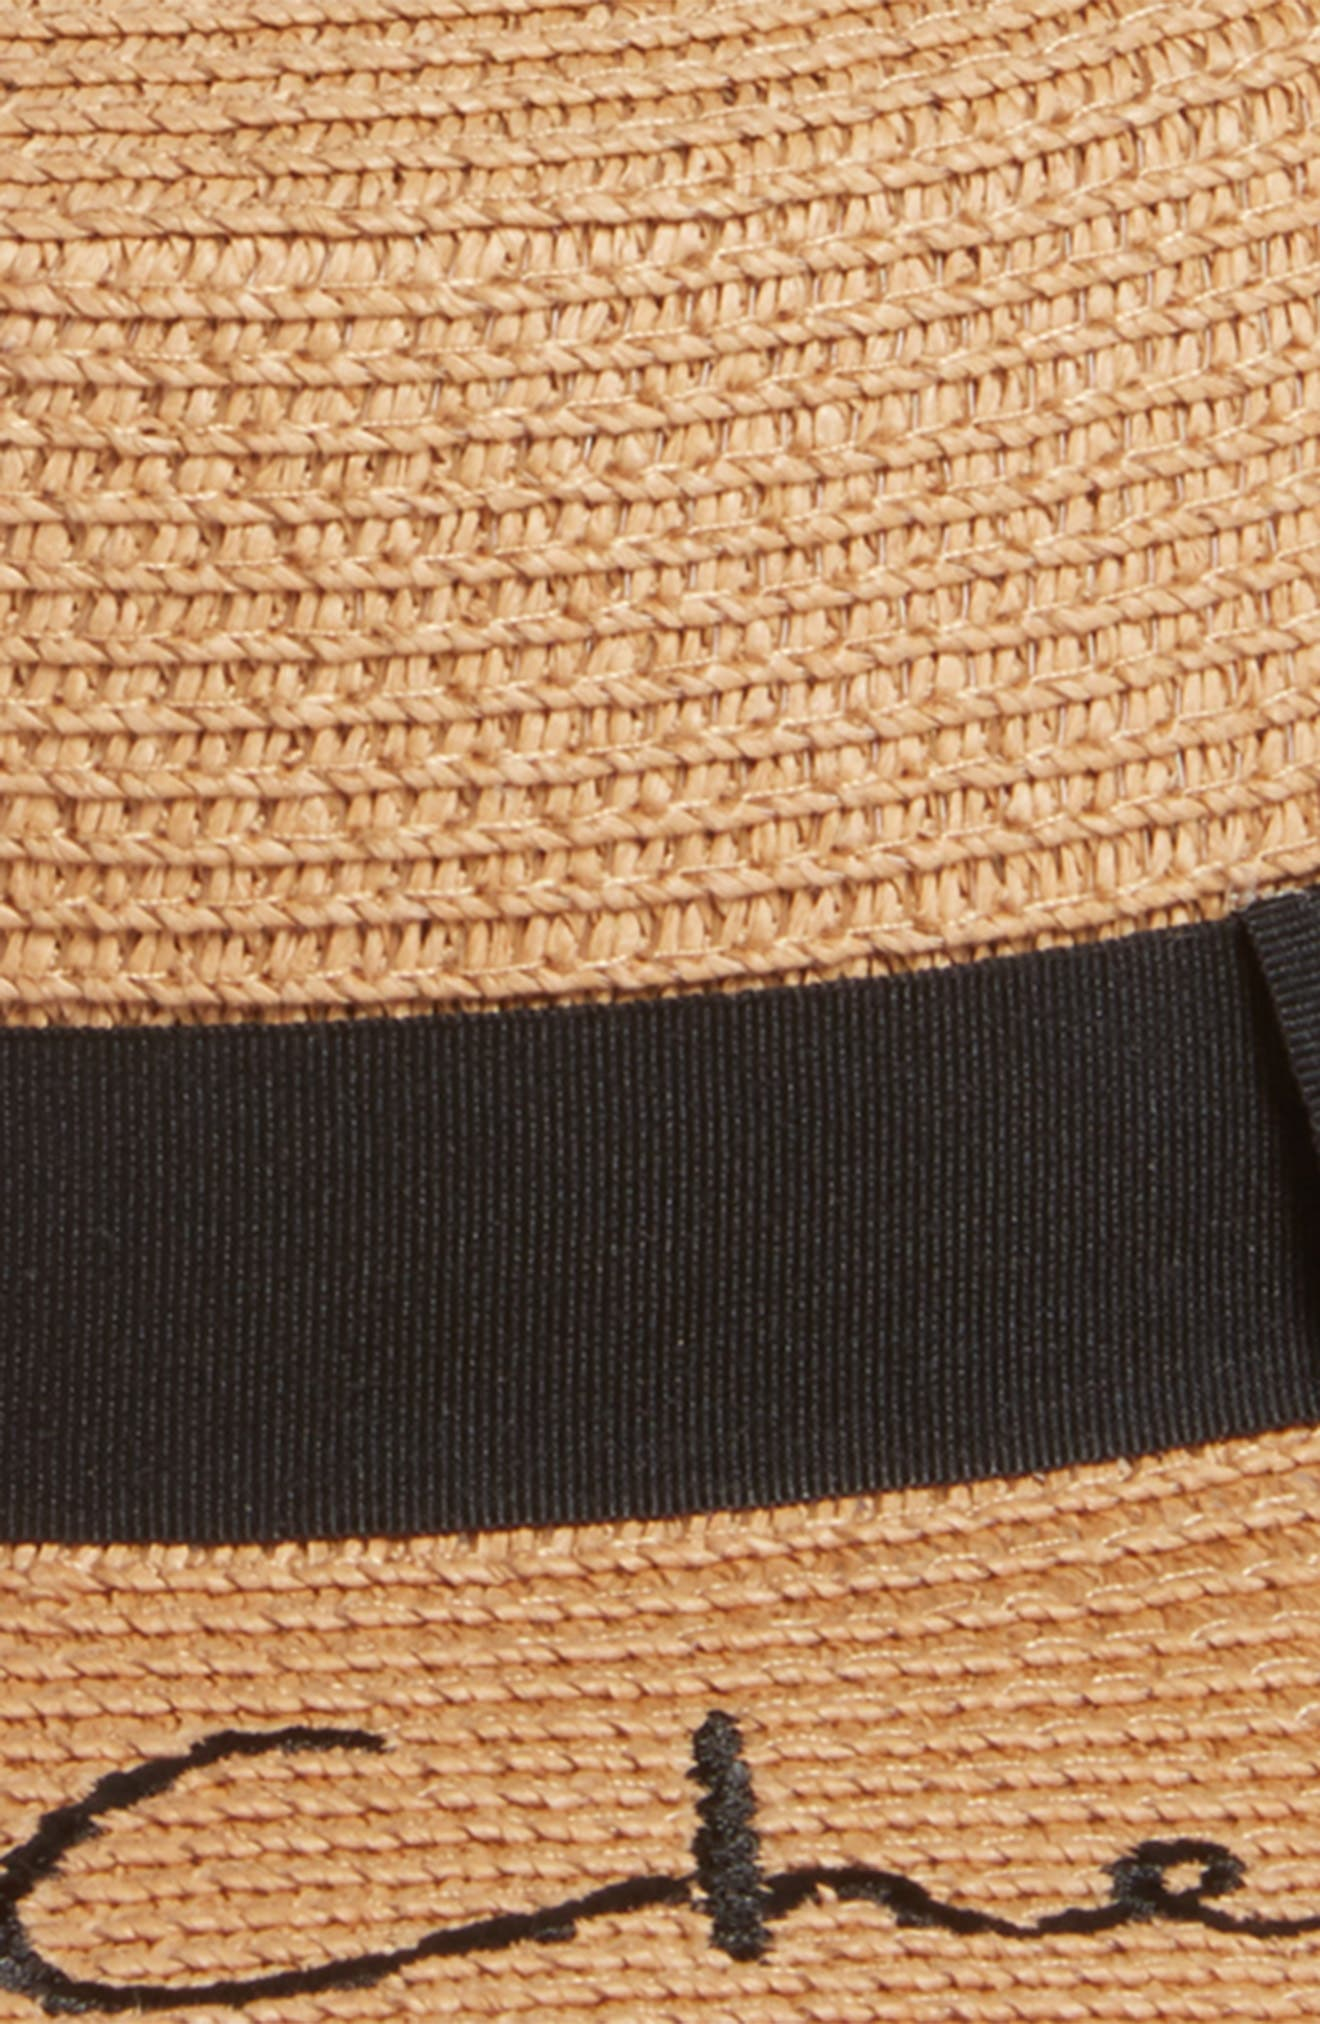 Verbiage Frayed Edge Straw Boater Hat,                             Alternate thumbnail 2, color,                             Natural/ Black